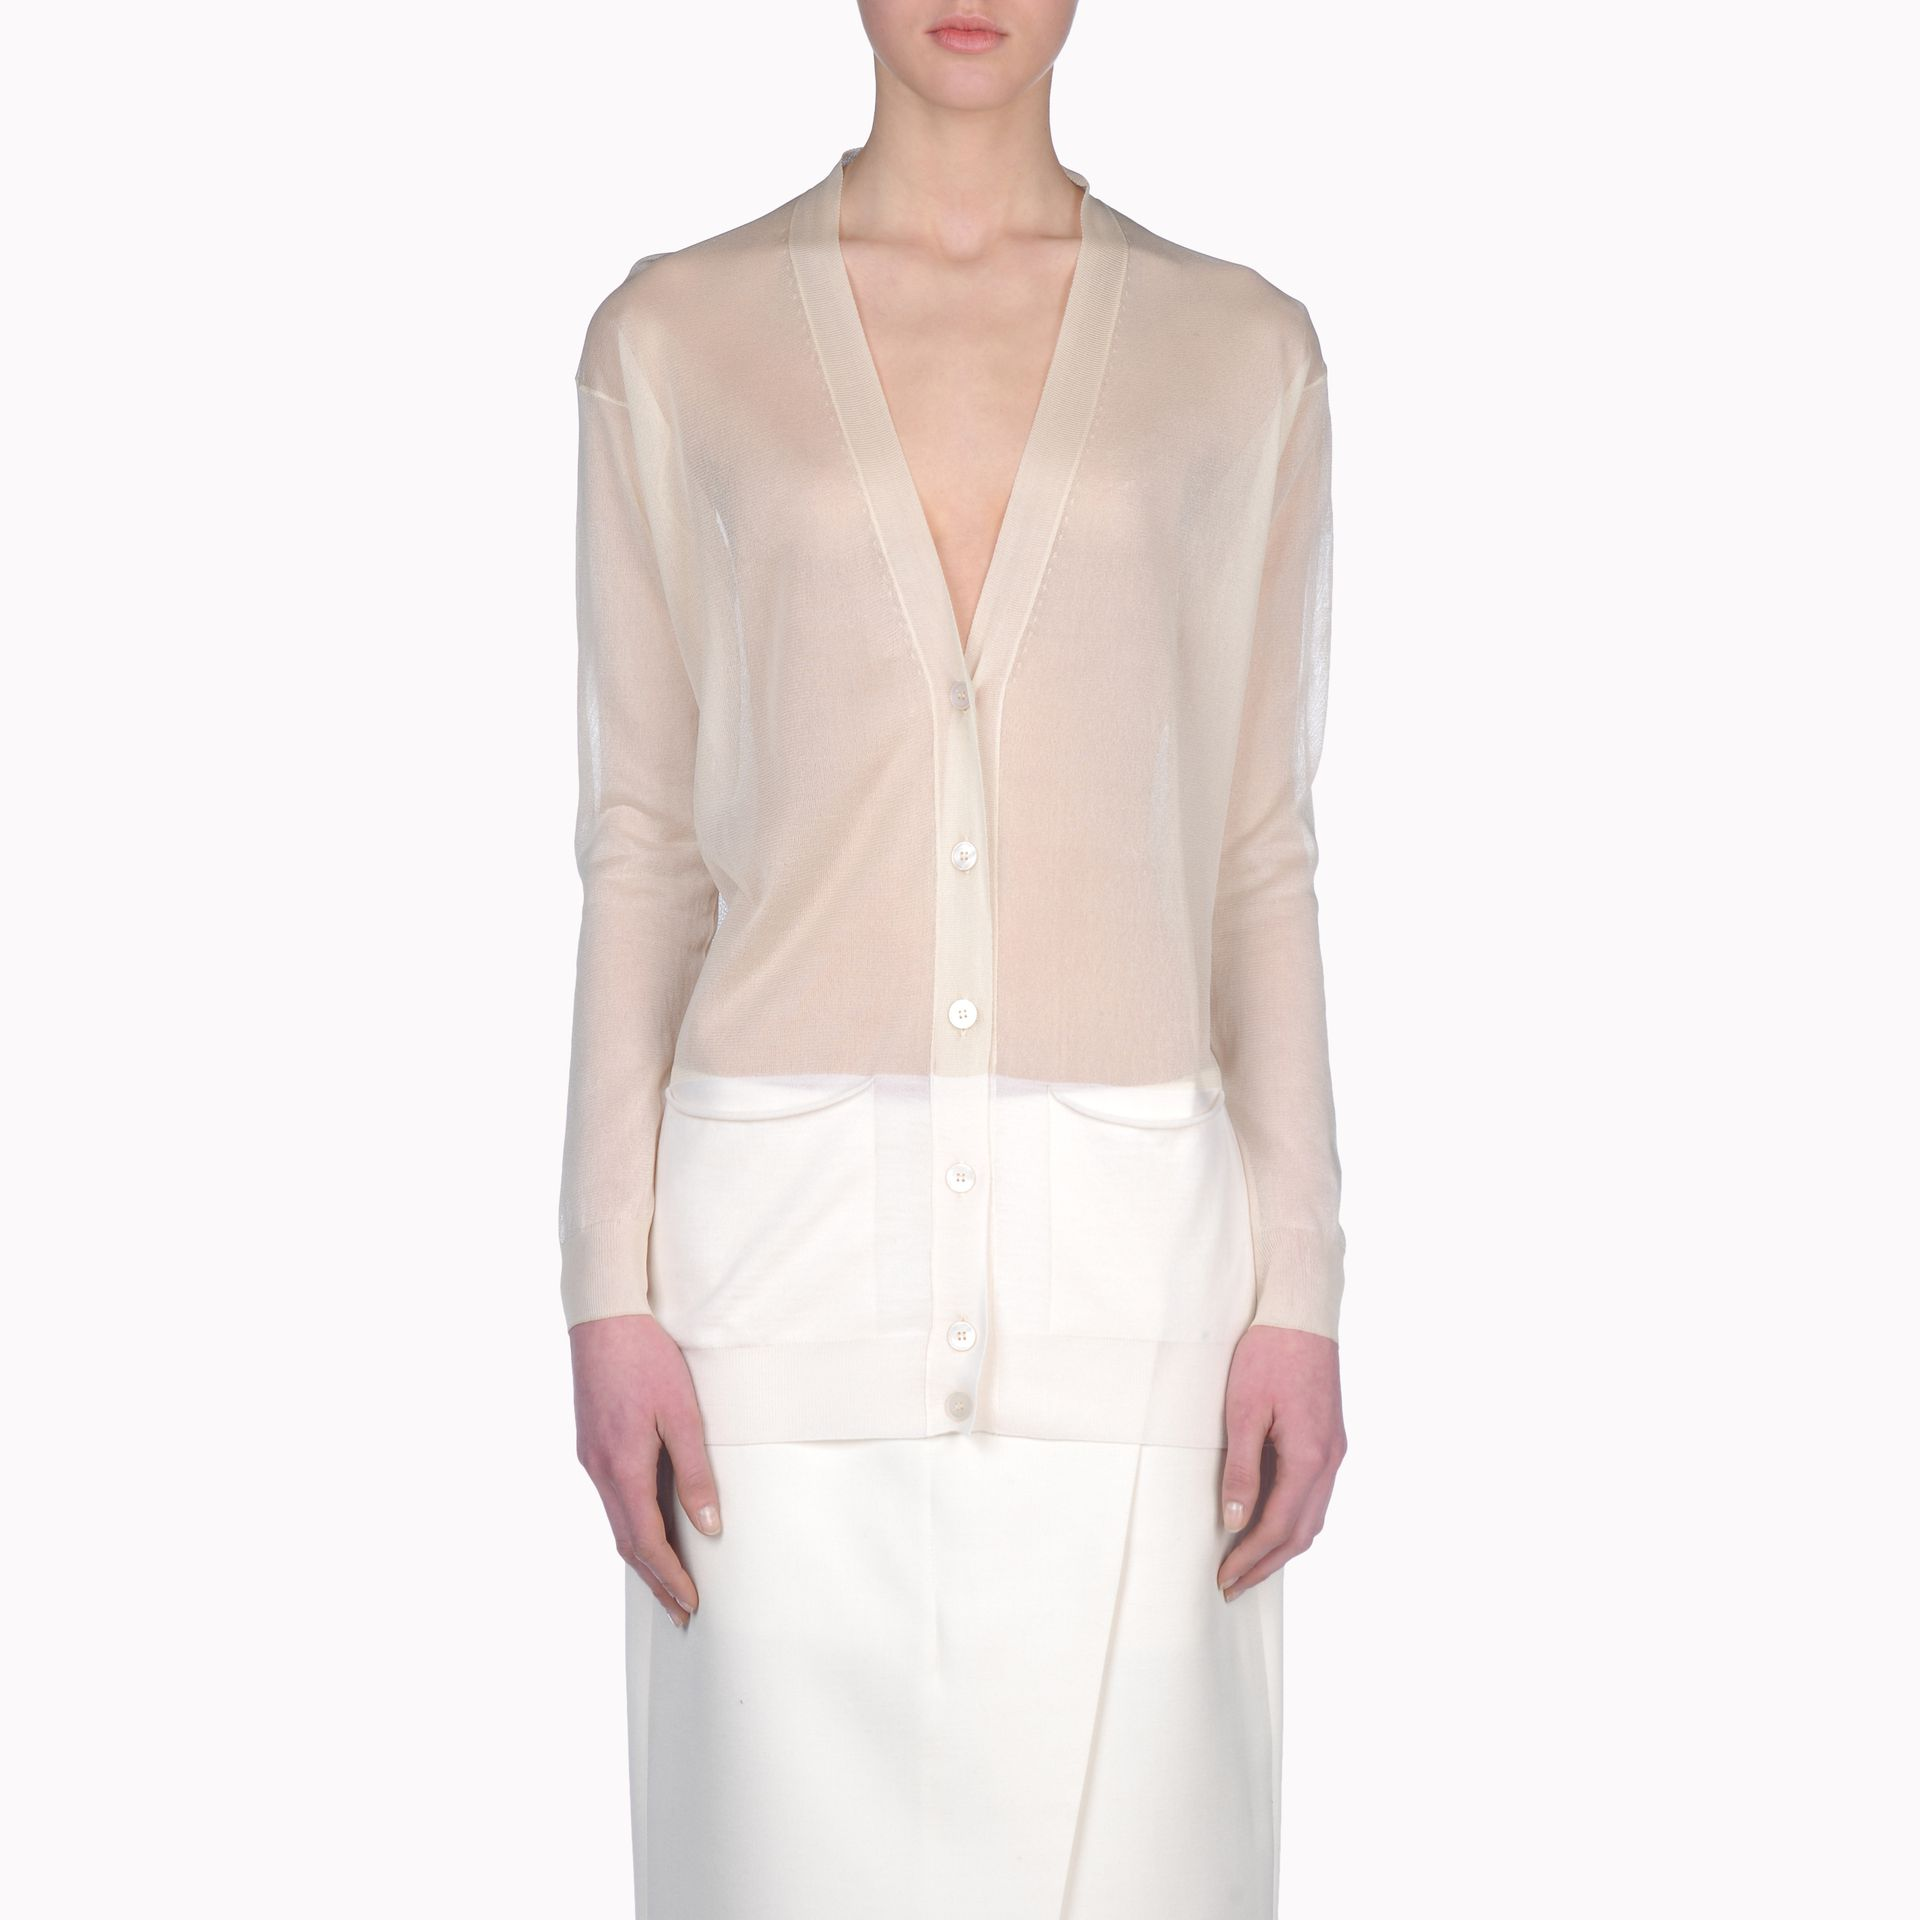 Stella mccartney Transparent Insert V Neck Cardigan in White | Lyst